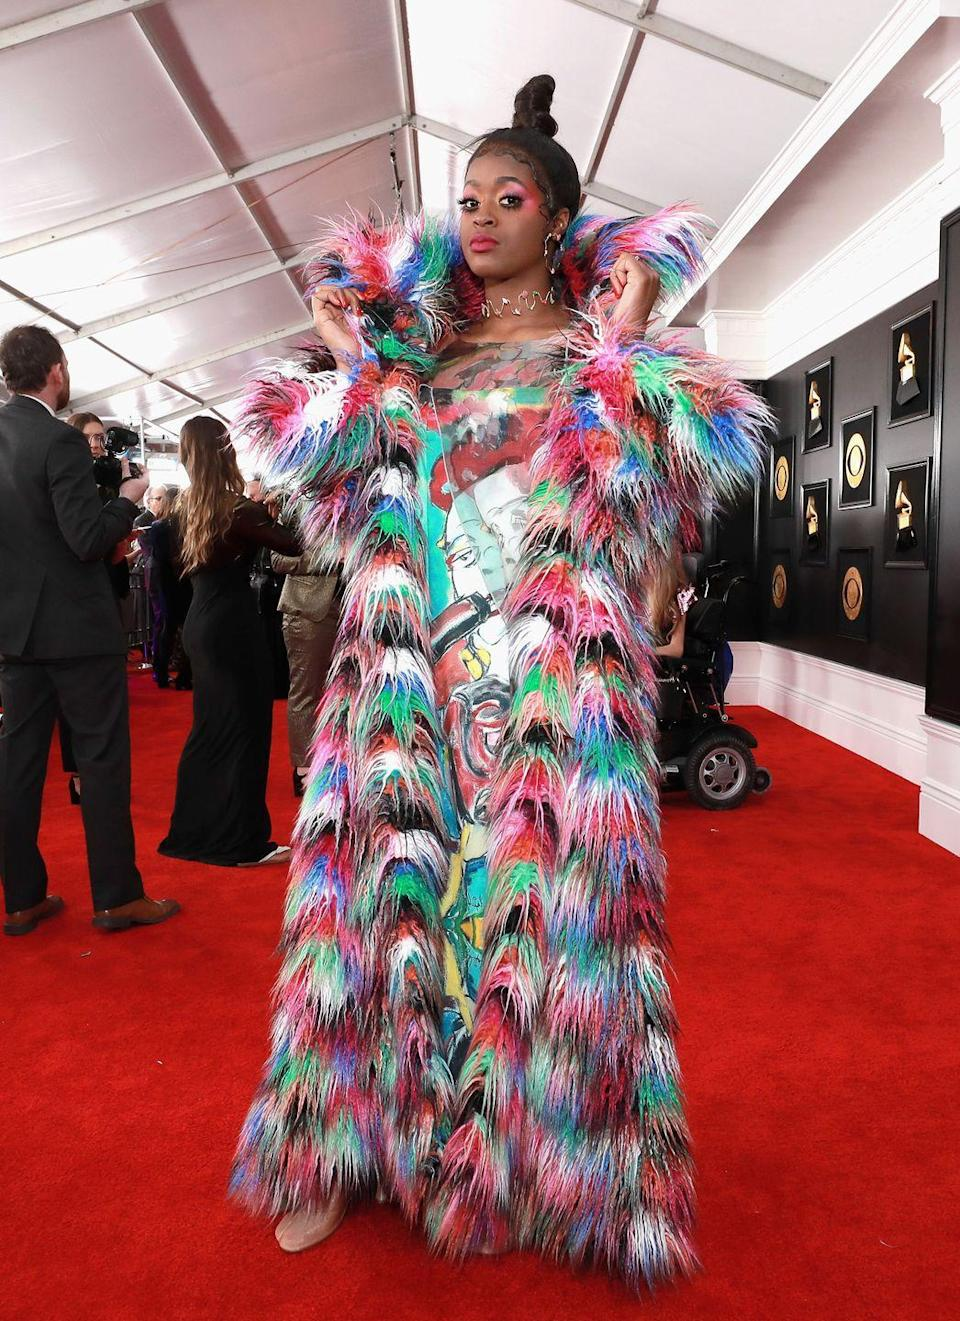 <p>Rainbow fur moments don't happen every red carpet. But when they do happen, every other look just seems understated. </p>